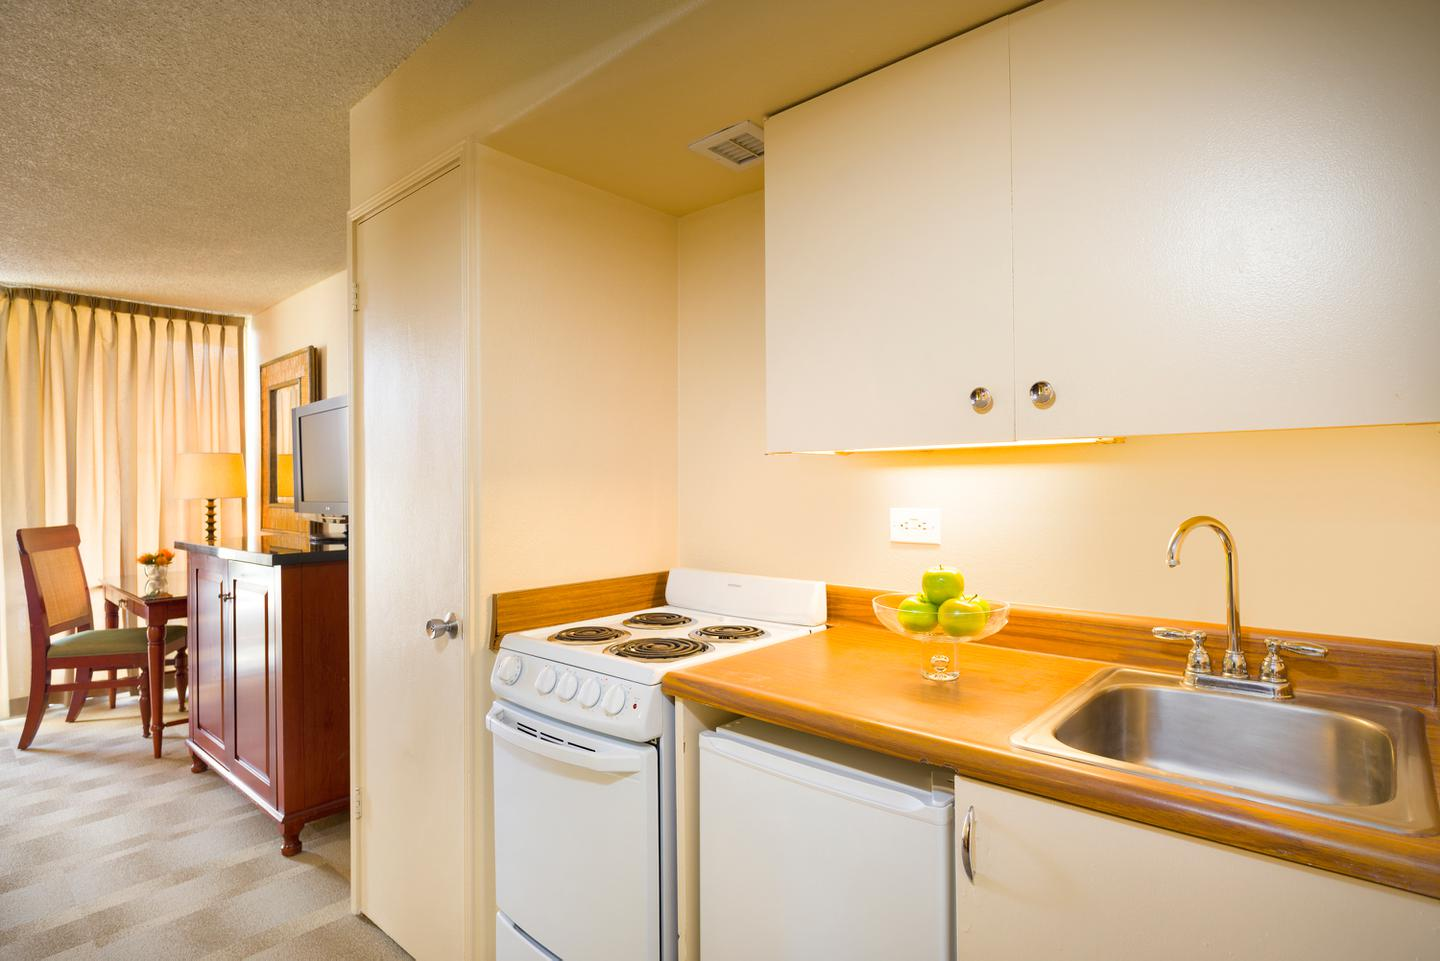 juneau kitchen hotels dr with deluxe extended of general stay ak shell hotel simmons reservations